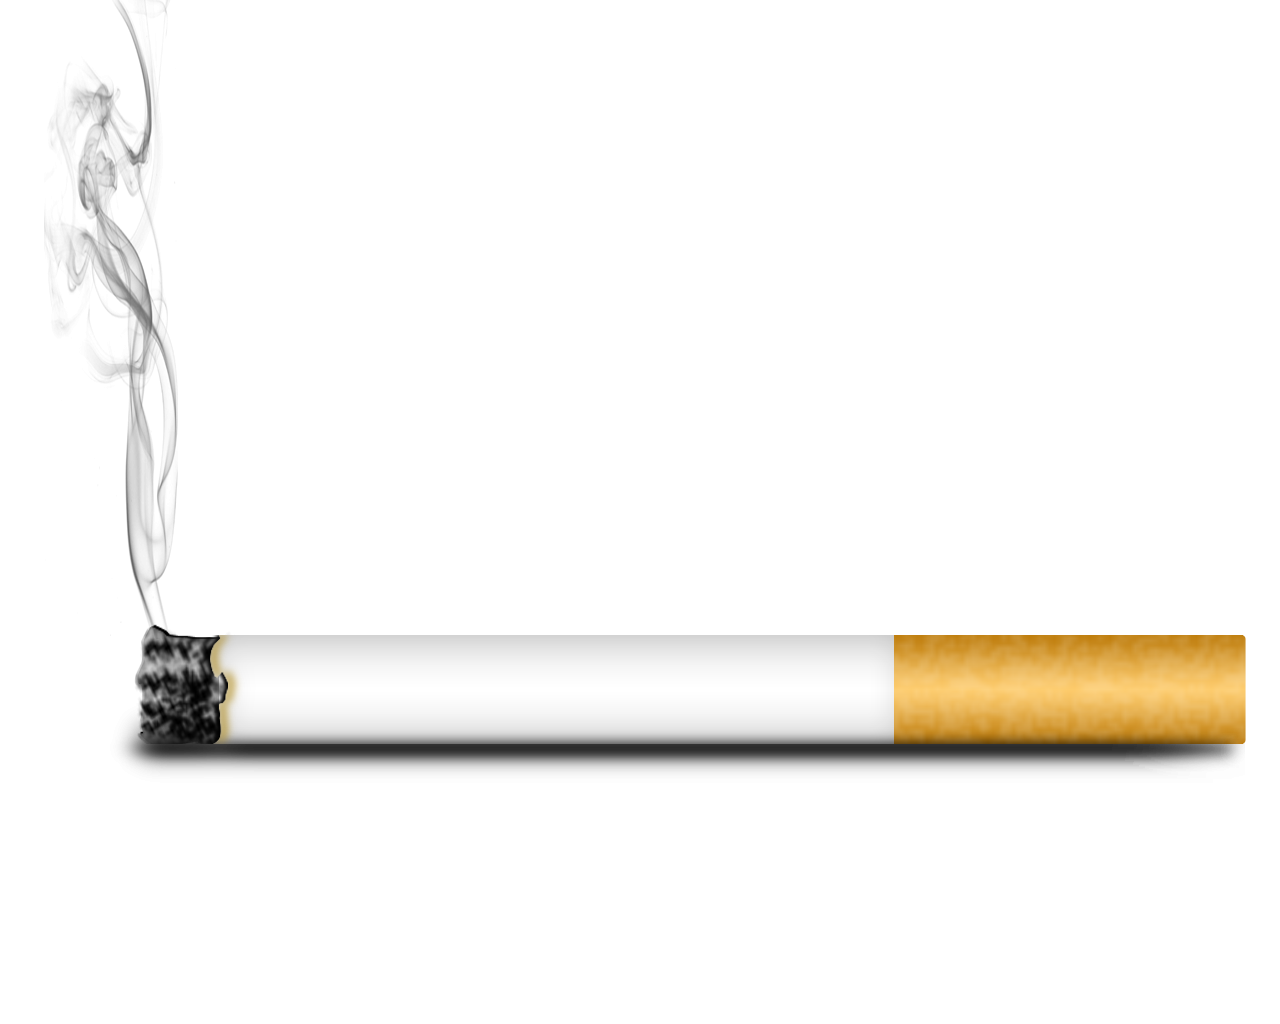 Cigarettes Png Available In Different Size image #24461